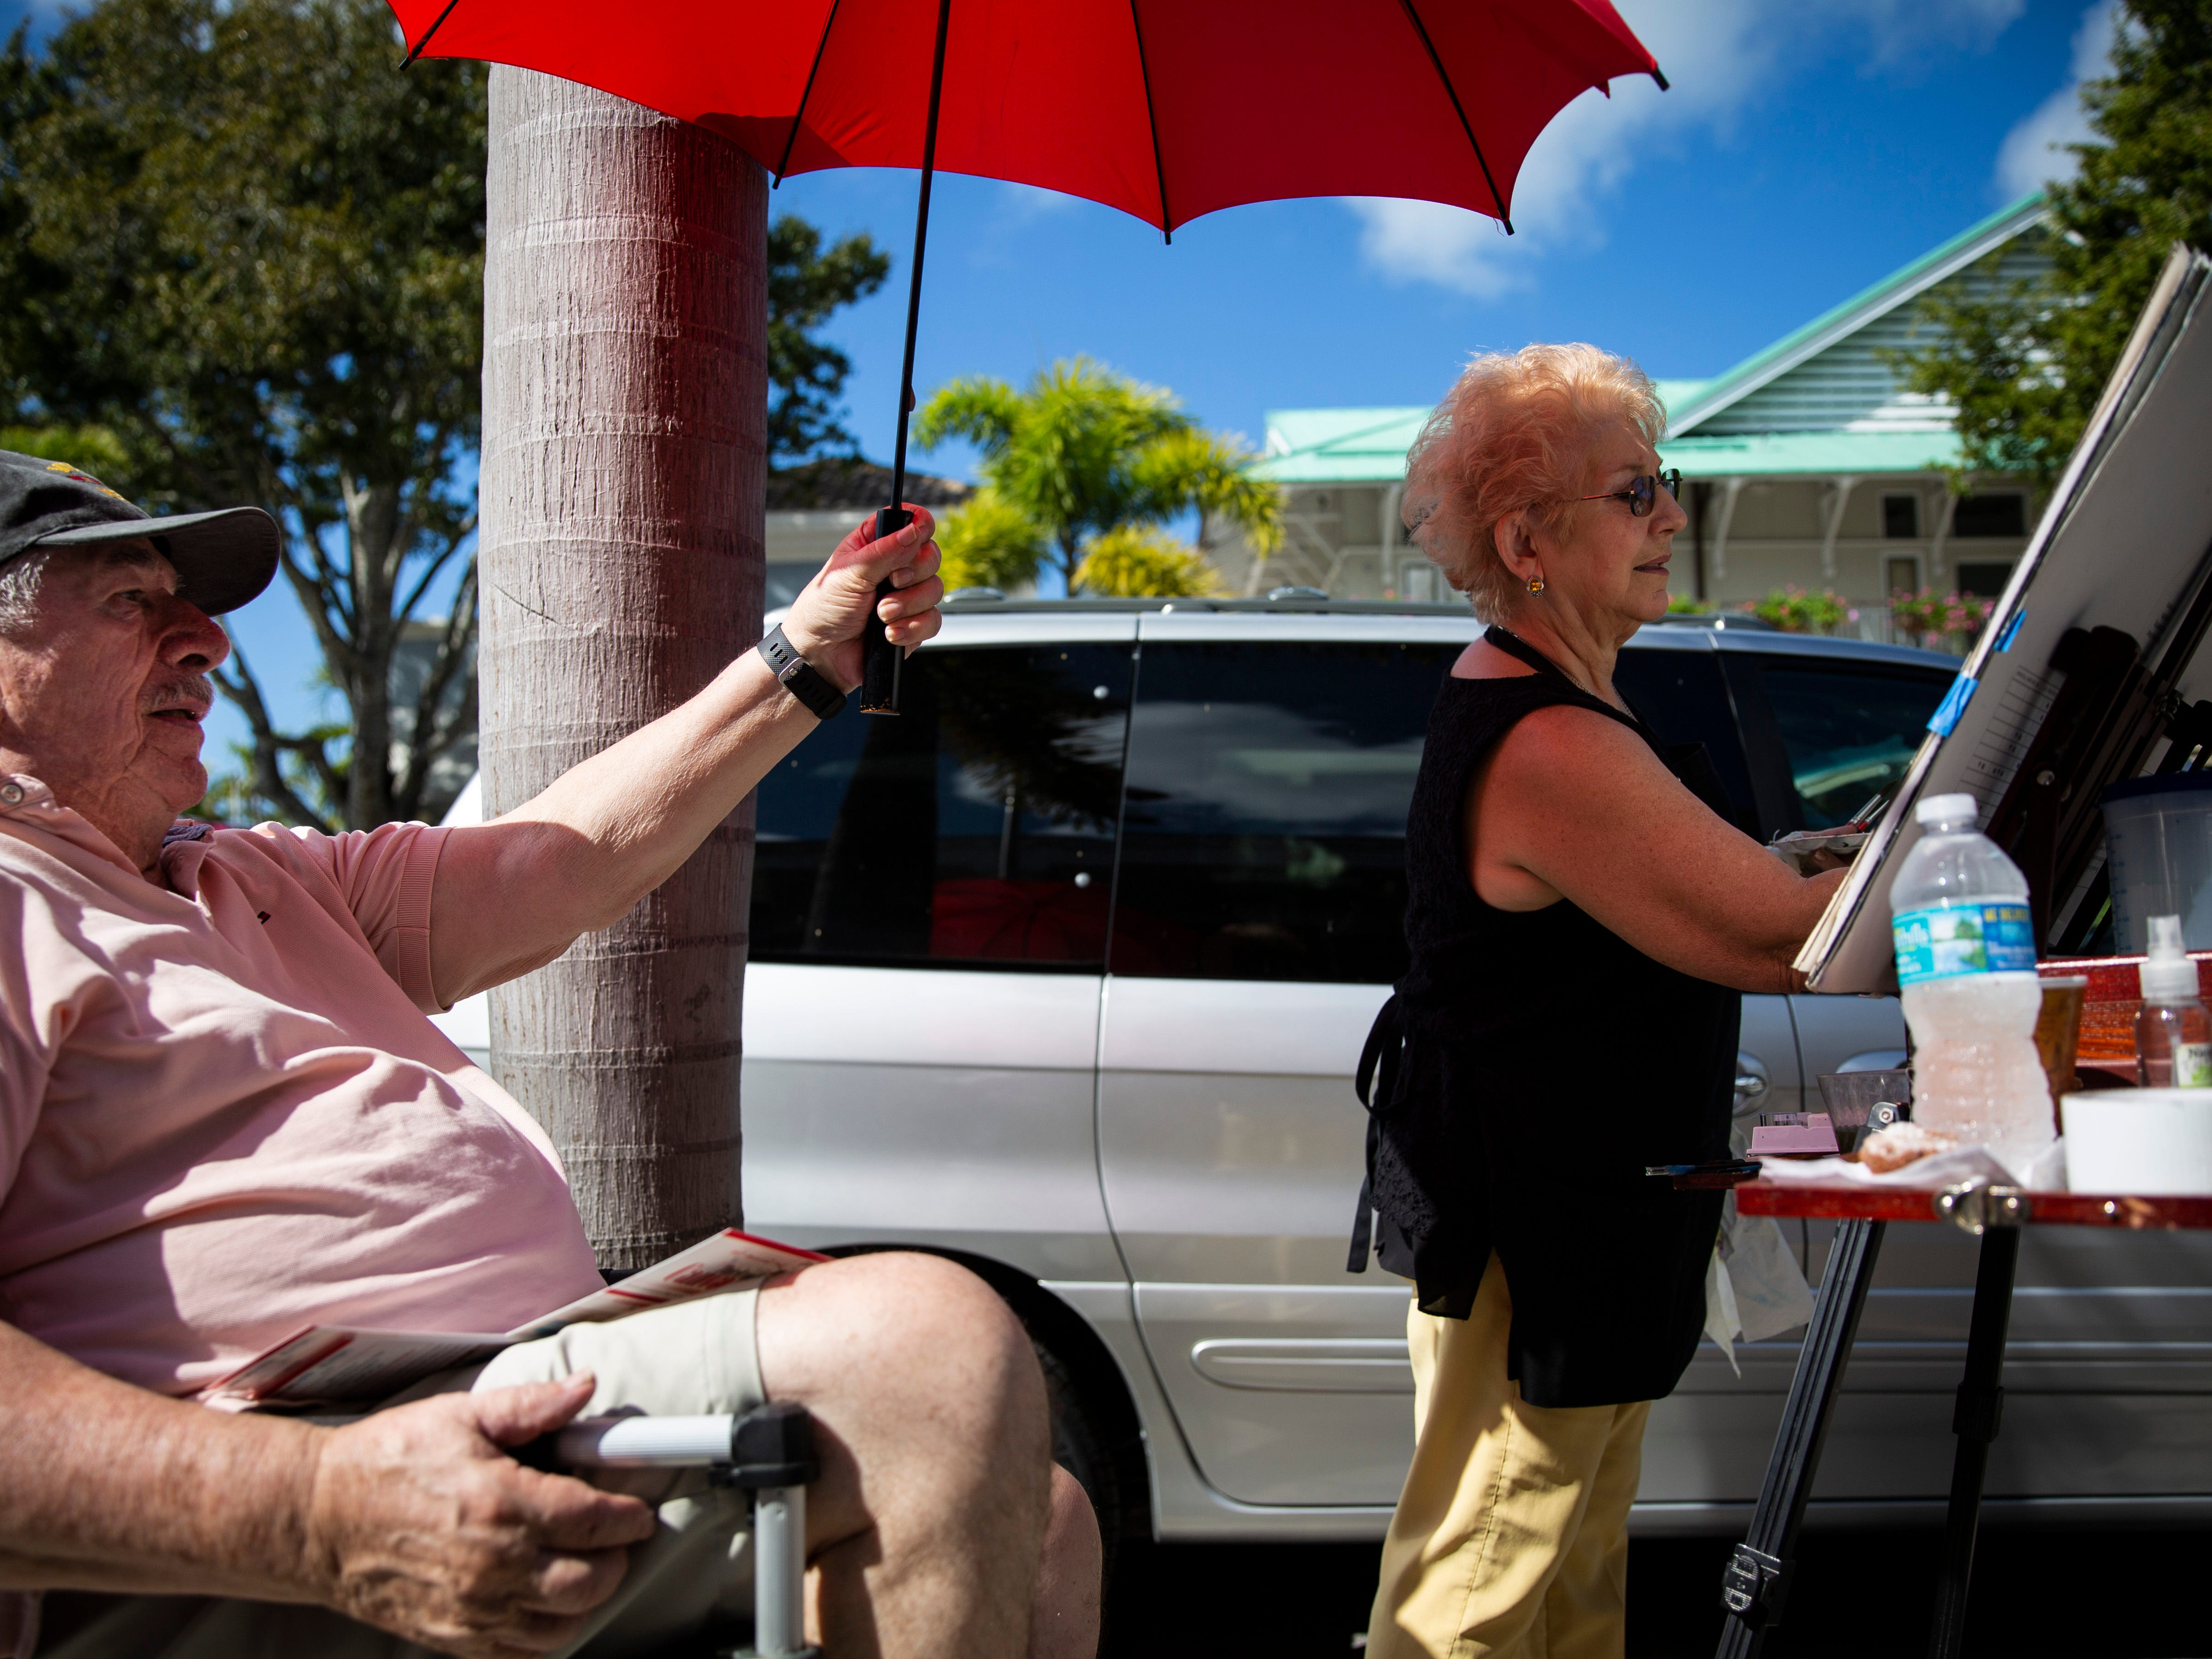 """Terry Hewitt holds an umbrella over his wife, Teresa Hewitt, while she paints during the annual Third on Canvas event on Third Street South in Naples, on Sunday, Feb. 17, 2019. The Hewitts recently celebrated their 50th wedding anniversary. """"I haven't been doing this for 50 years,"""" Terry said, gesturing toward the umbrella, """"my arm would fall off."""""""